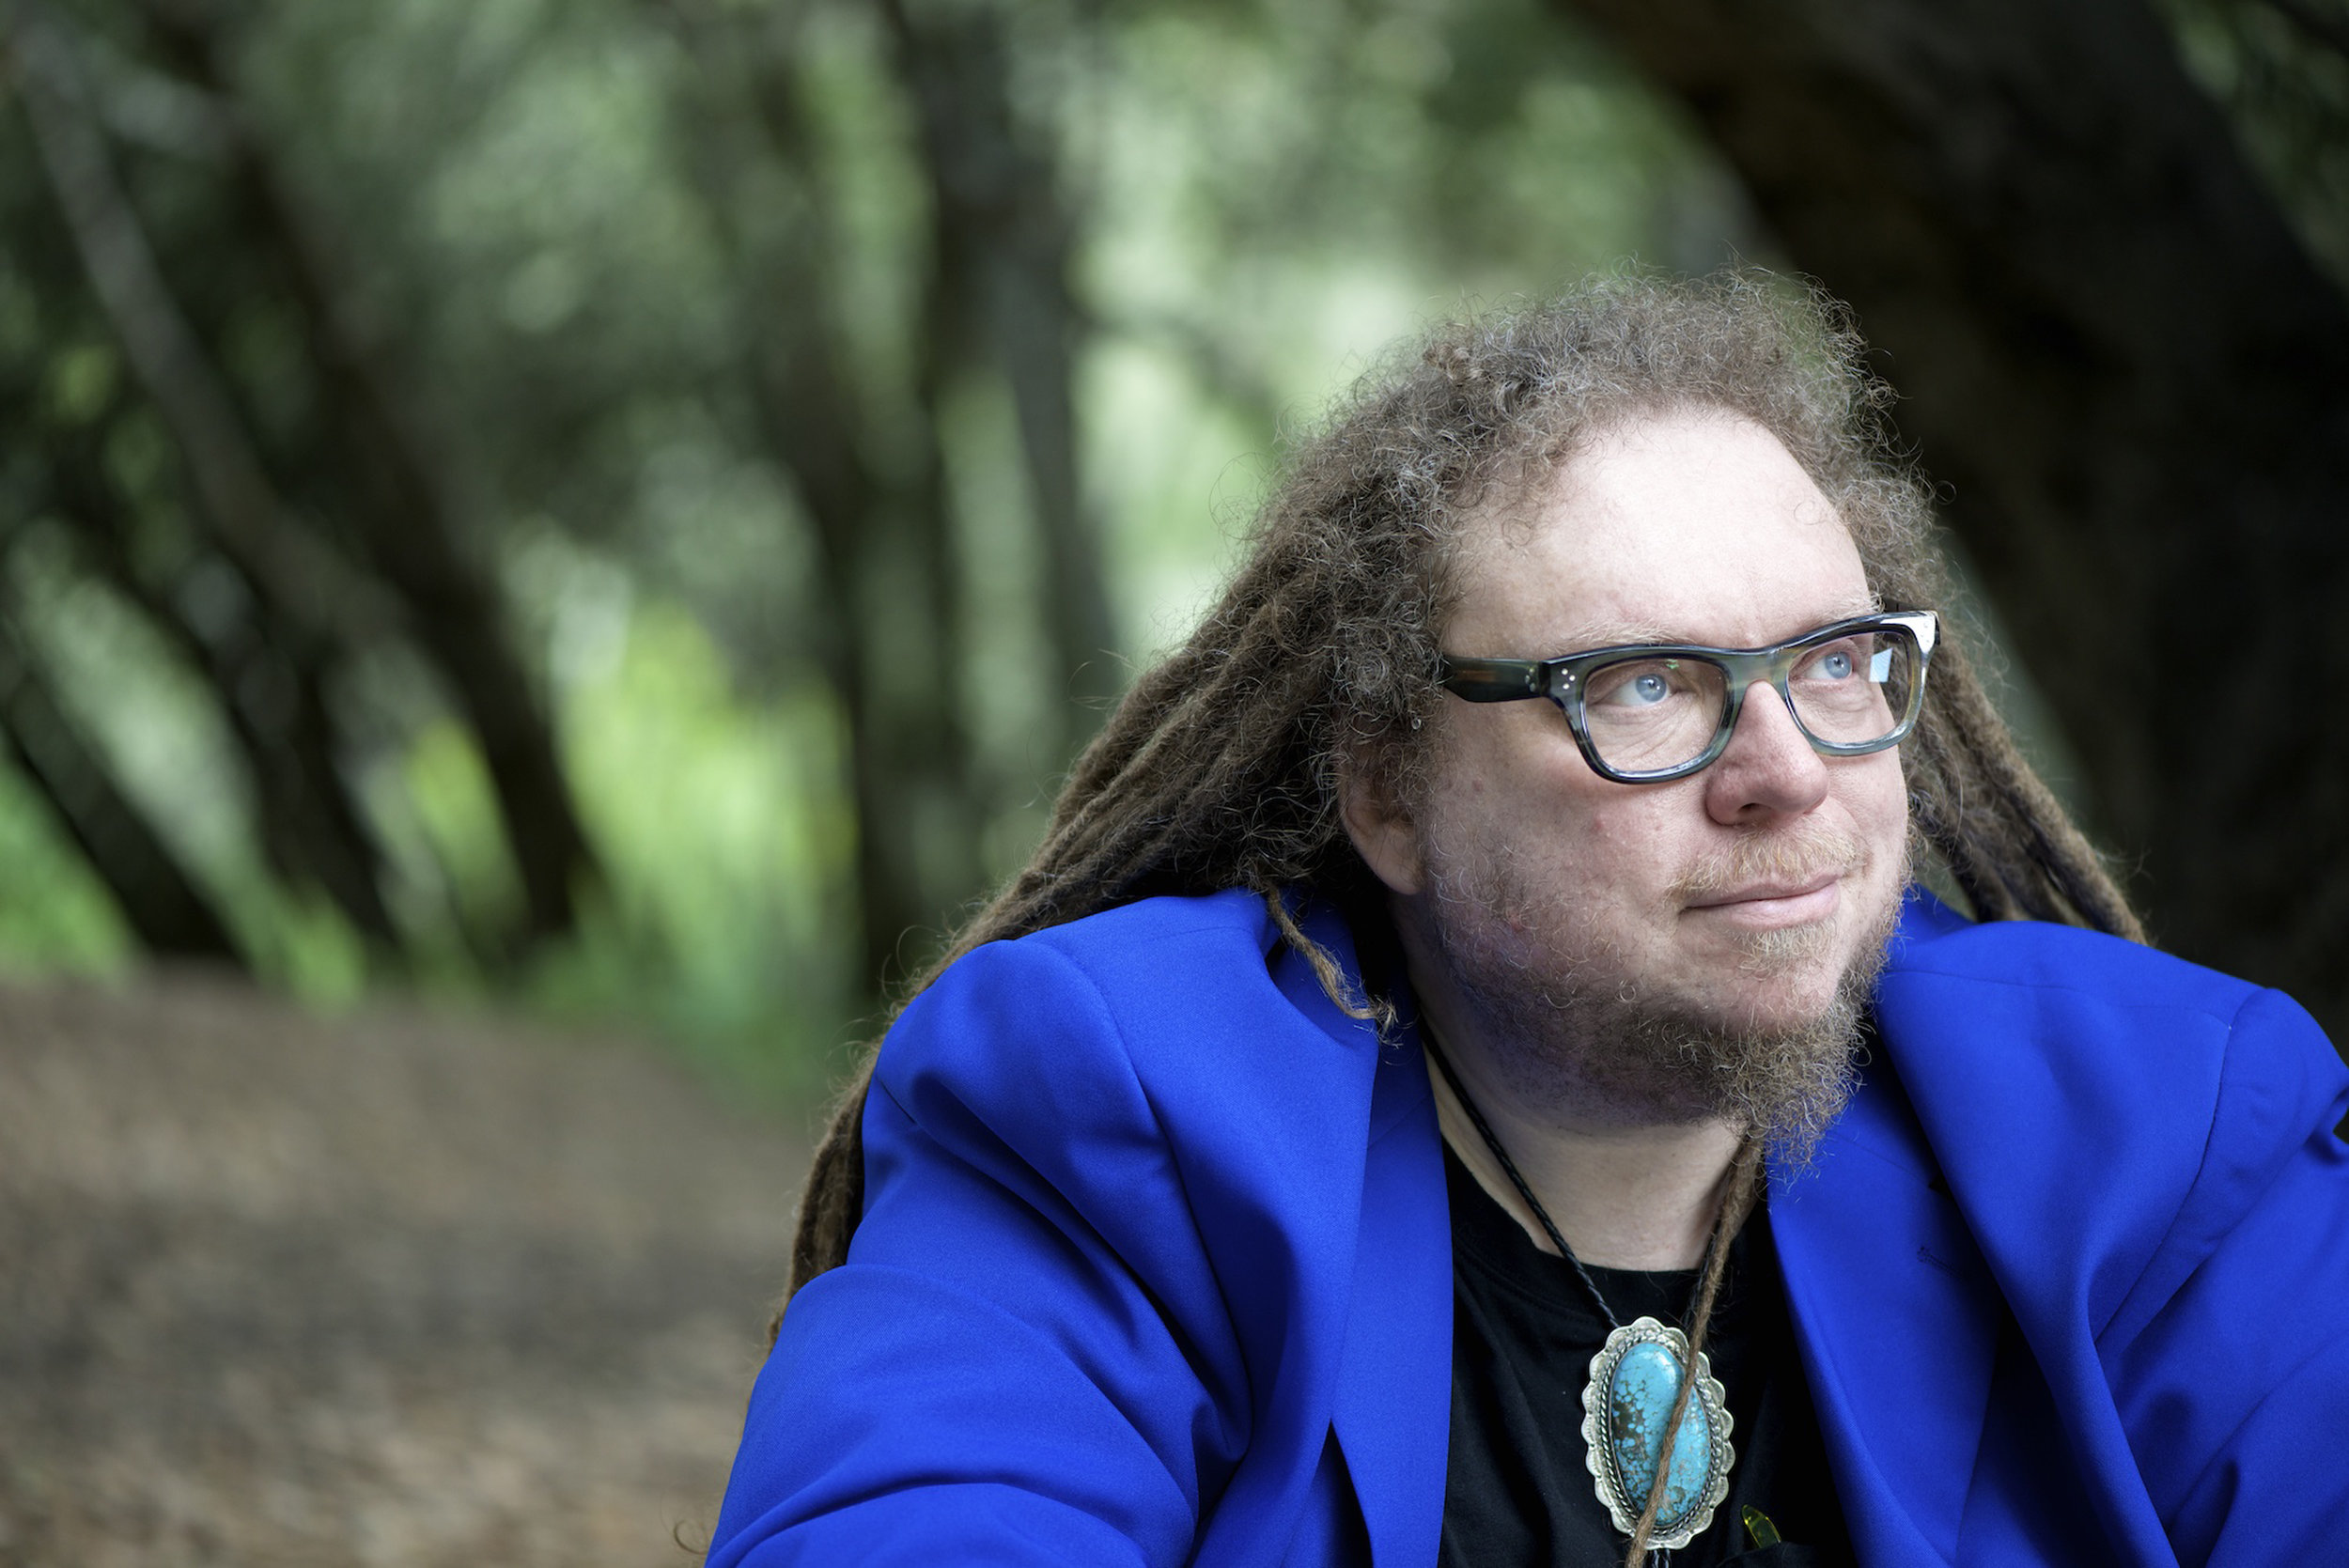 Jaron Lanier - JARON is a 2010 TIME100 Thinkers. He is one of the leading philosophers of the digital age. He is a computer scientist, a musician and an author best known for his pioneer work in virtual reality and his advocacy of humanism and sustainable economics in a digital context.